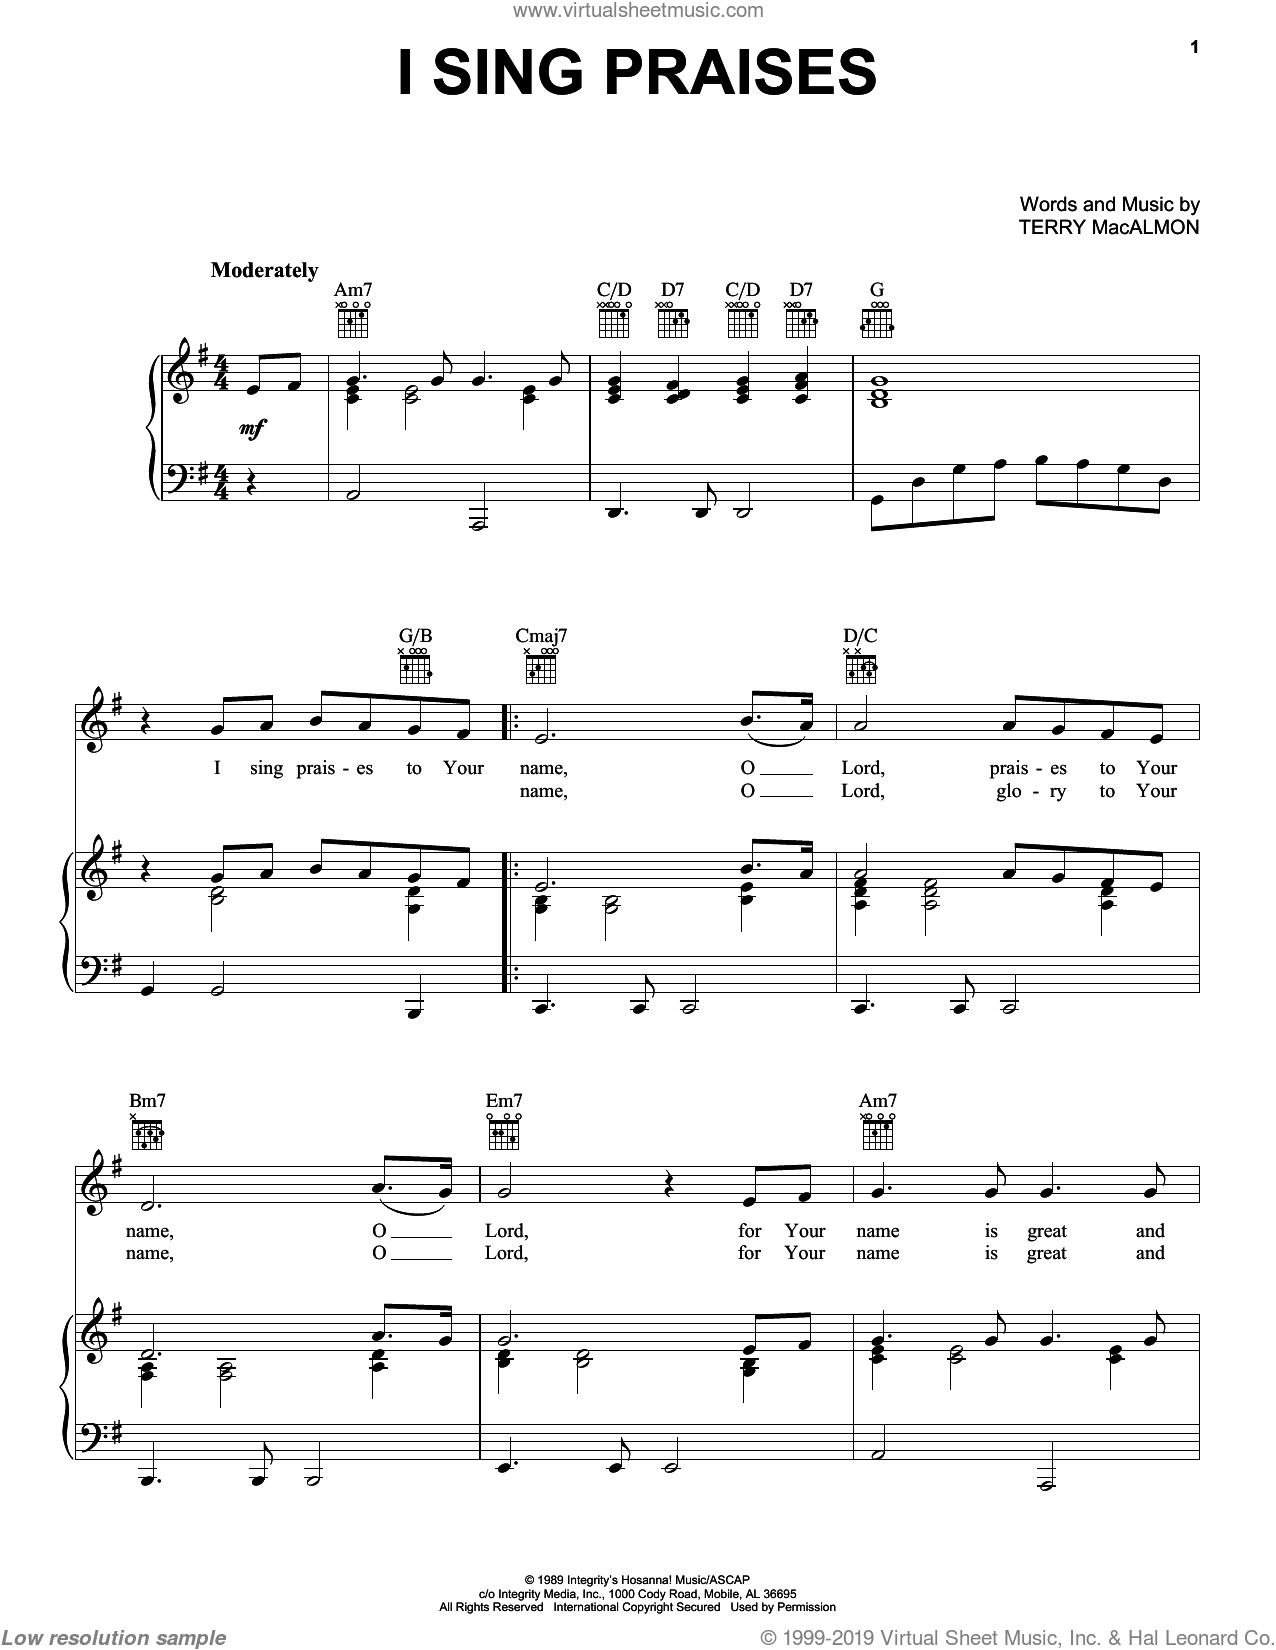 I Sing Praises sheet music for voice, piano or guitar by Terry MacAlmon, intermediate. Score Image Preview.